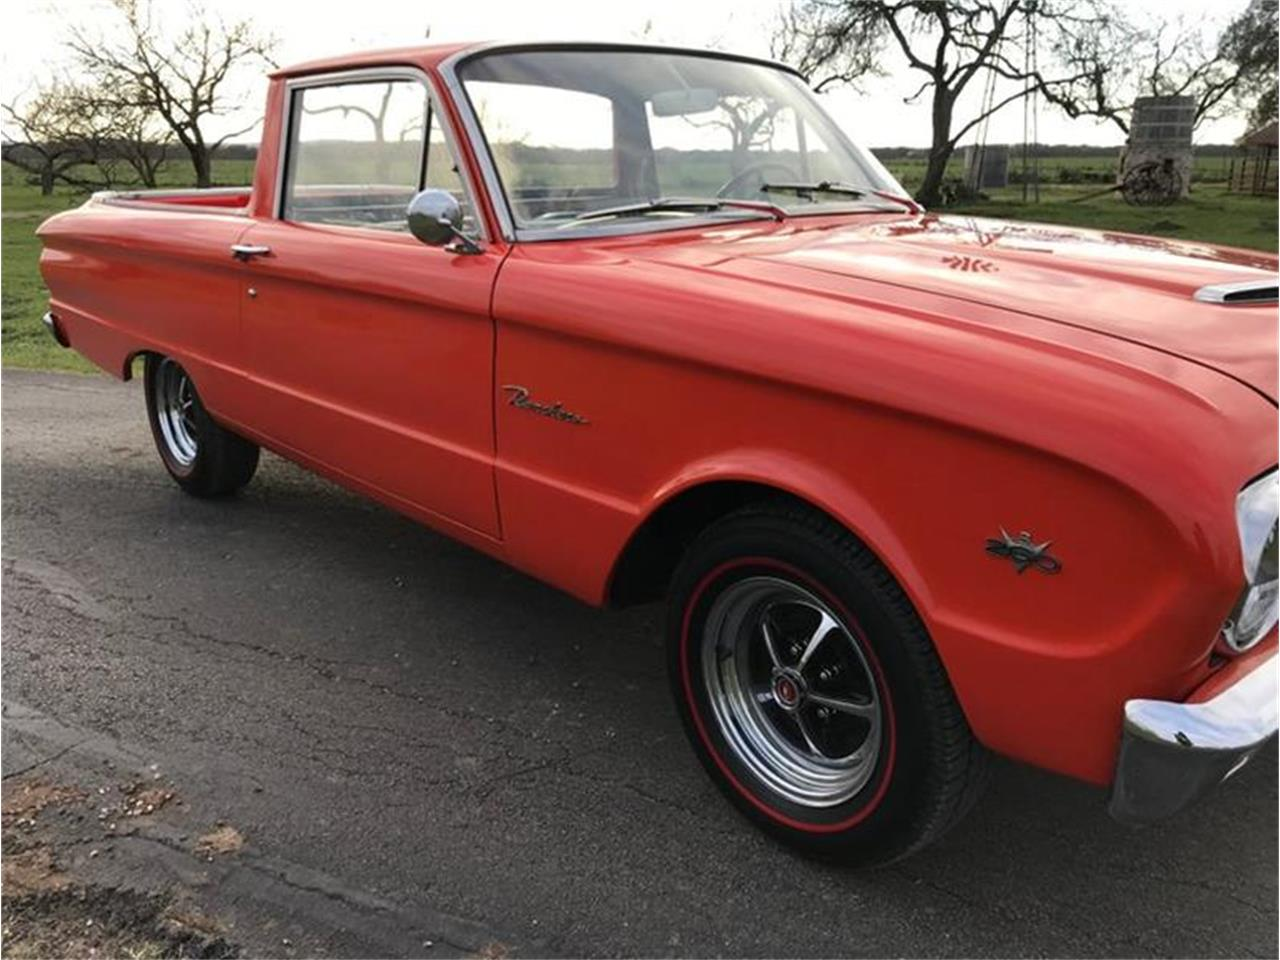 Large Picture of '63 Ford Ranchero located in Fredericksburg Texas - $22,500.00 - PNTM